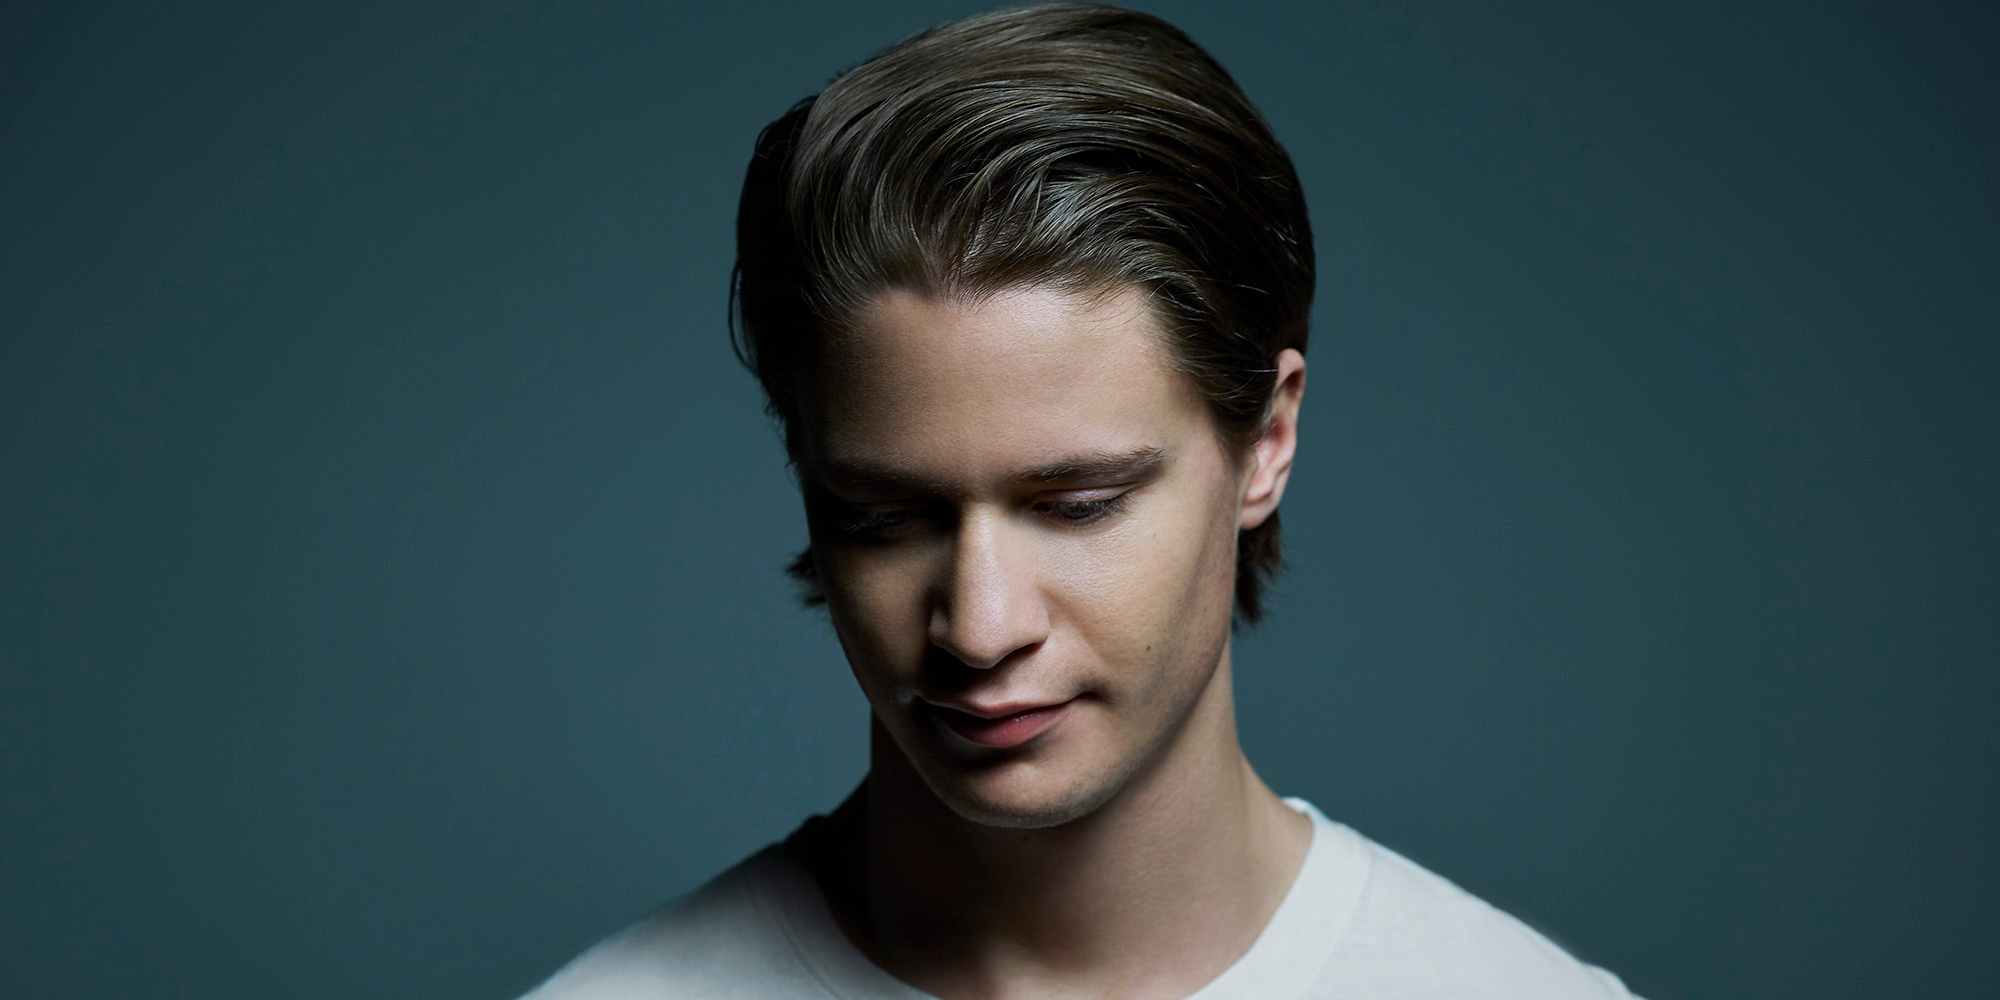 Kygo, Afrojack, Axwell Λ Ingrosso and more announced for Ultra Singapore's Phase 1 line-up